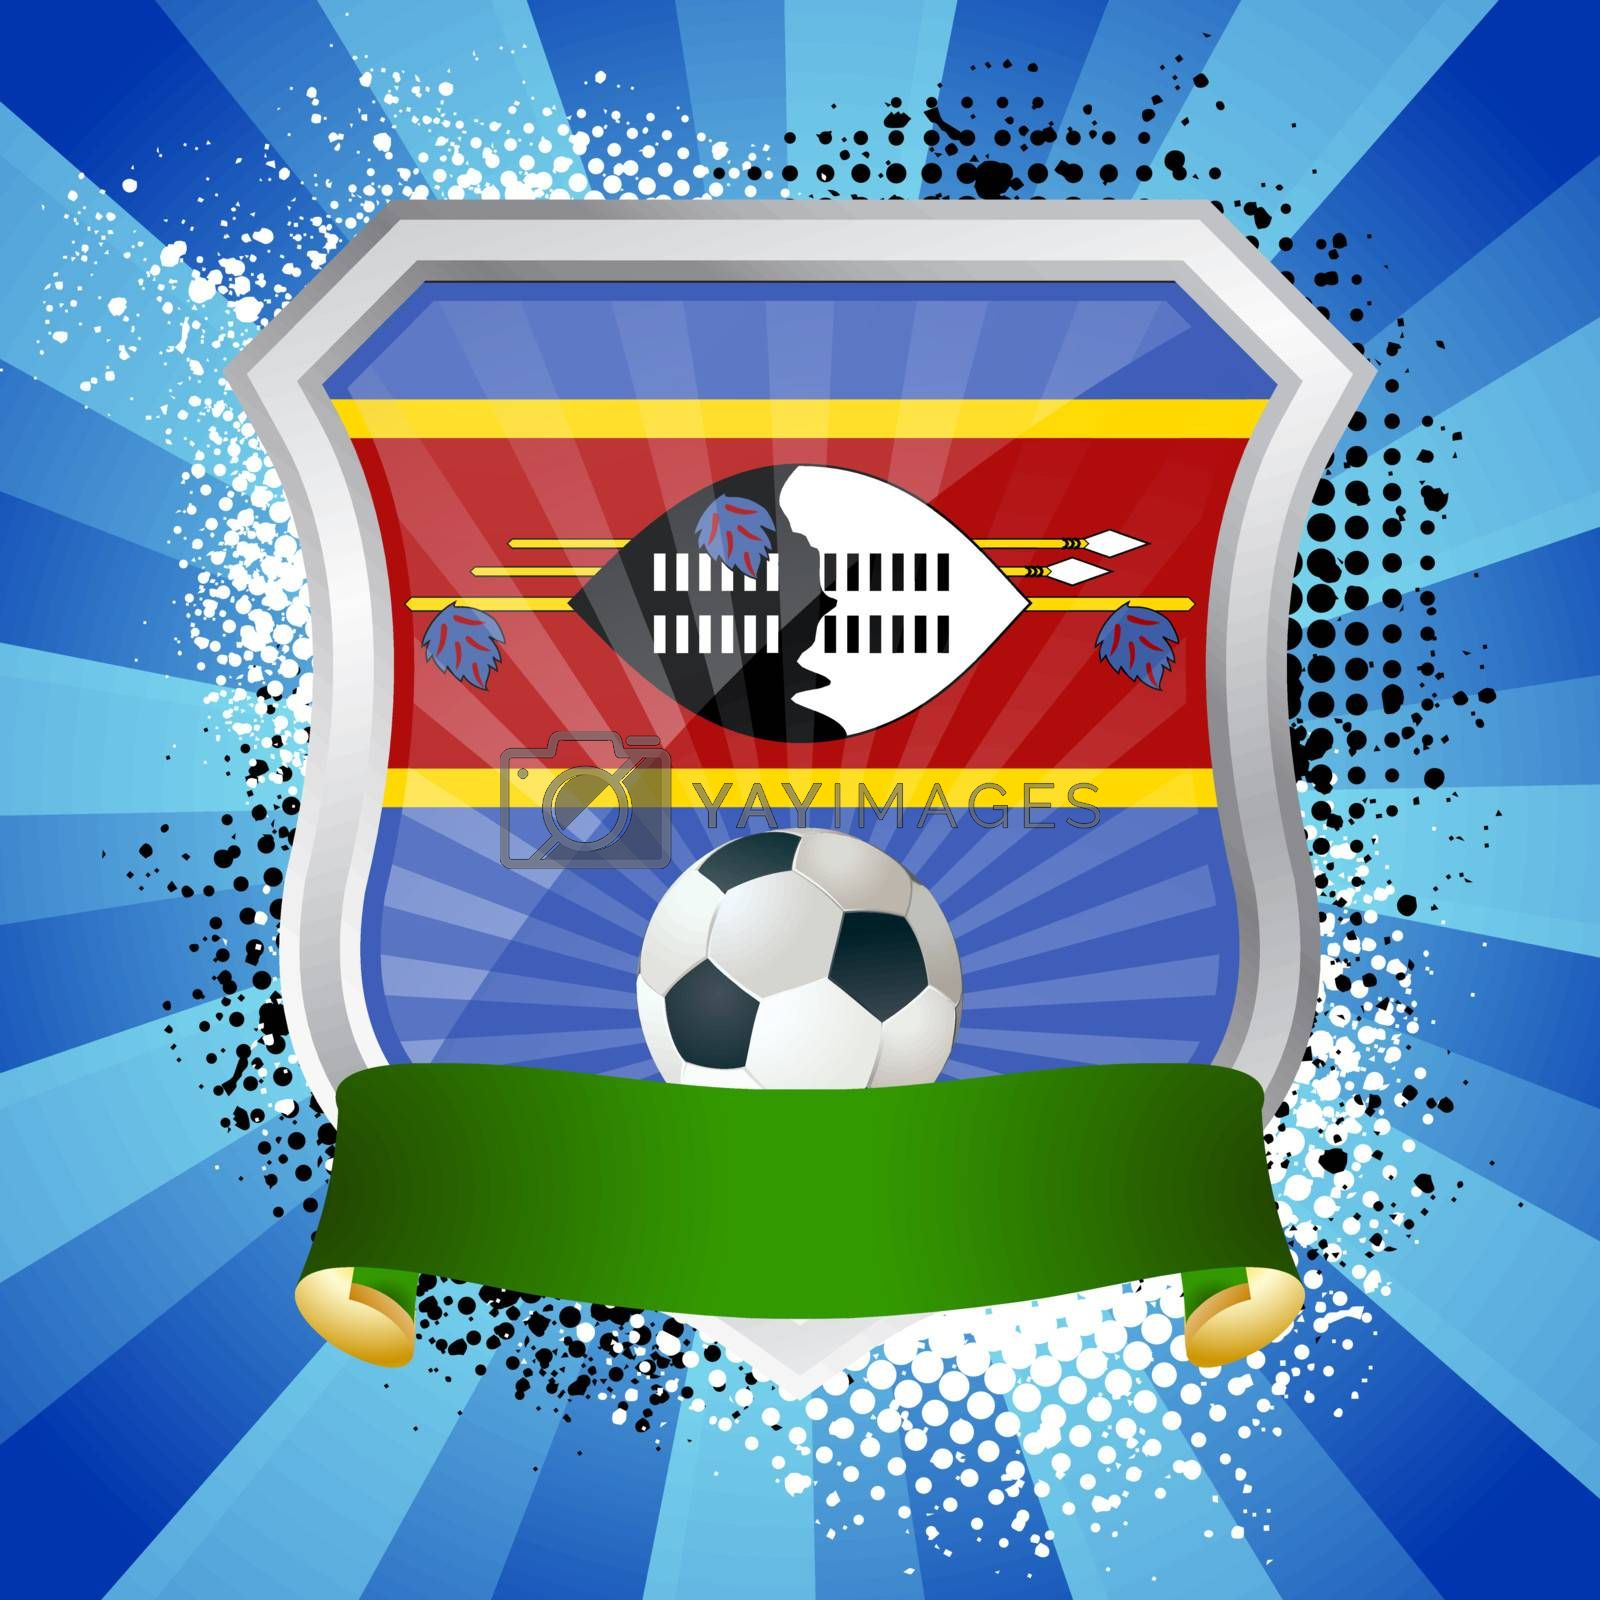 EPS 10. Shiny metal shield on bright background with flag of Swaziland